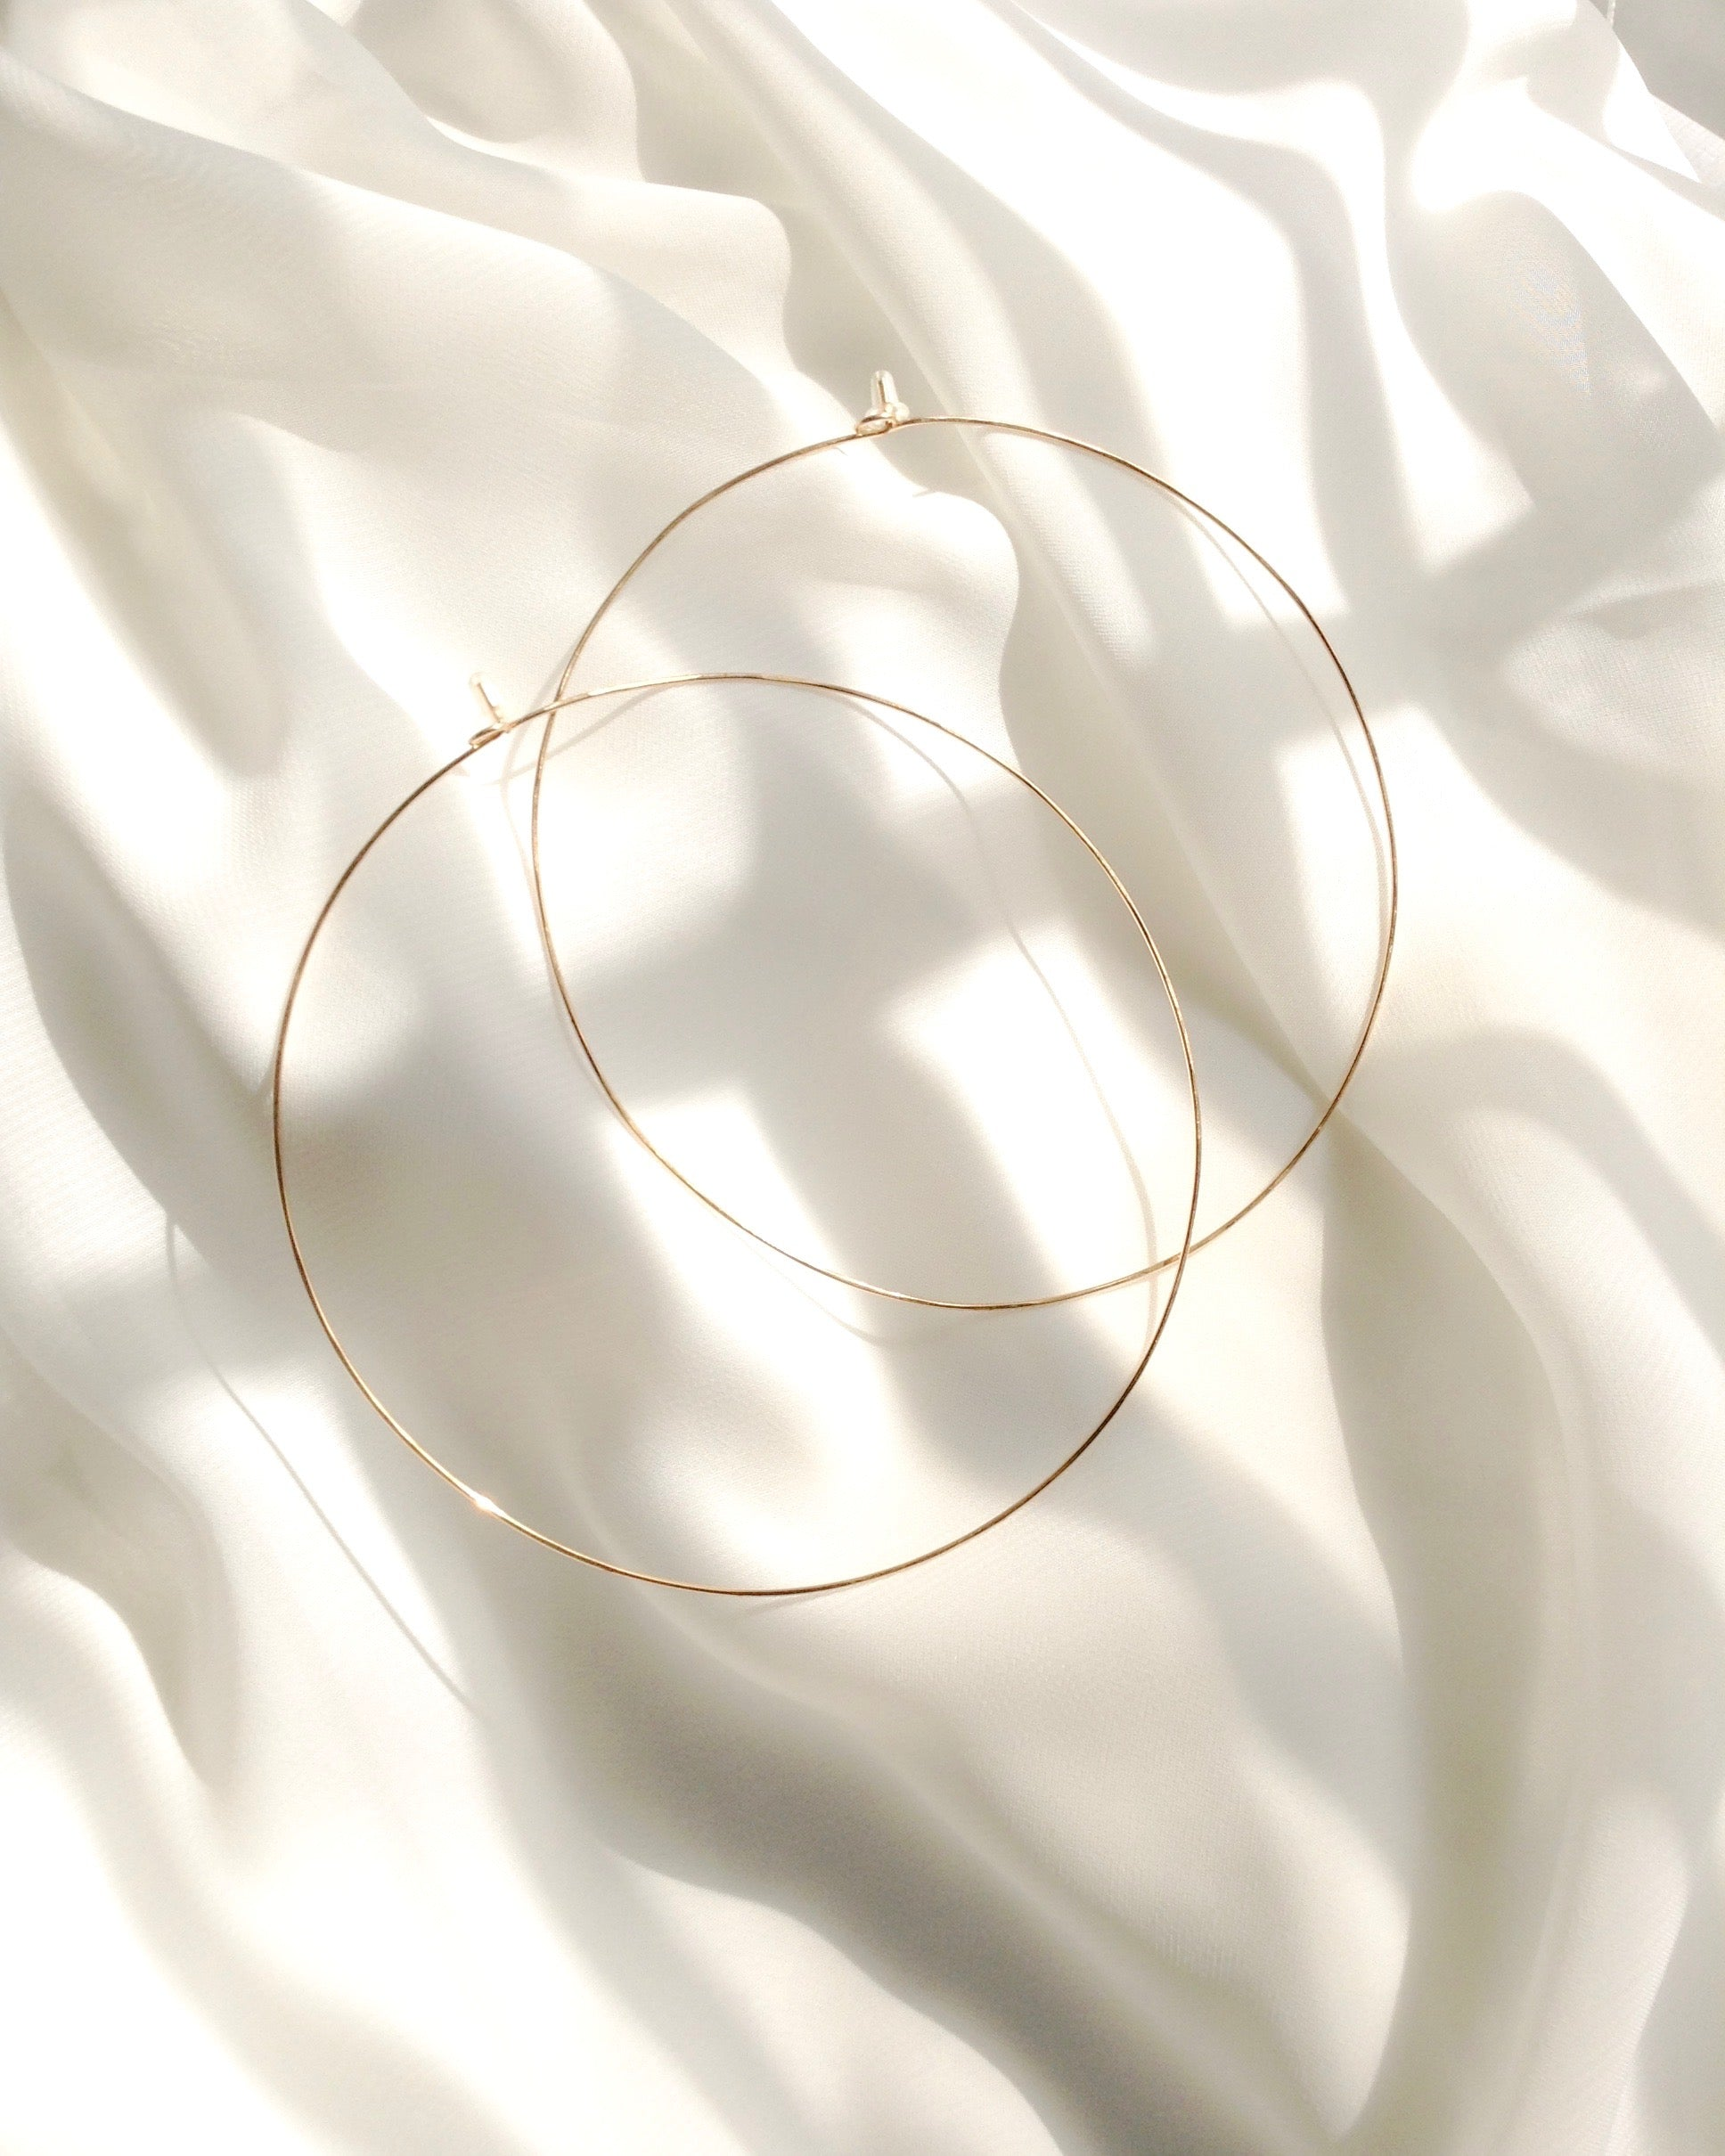 Big Thin Hoop Earrings in Gold Filled Sterling Silver or Rose Gold Filled | IB Jewerlry